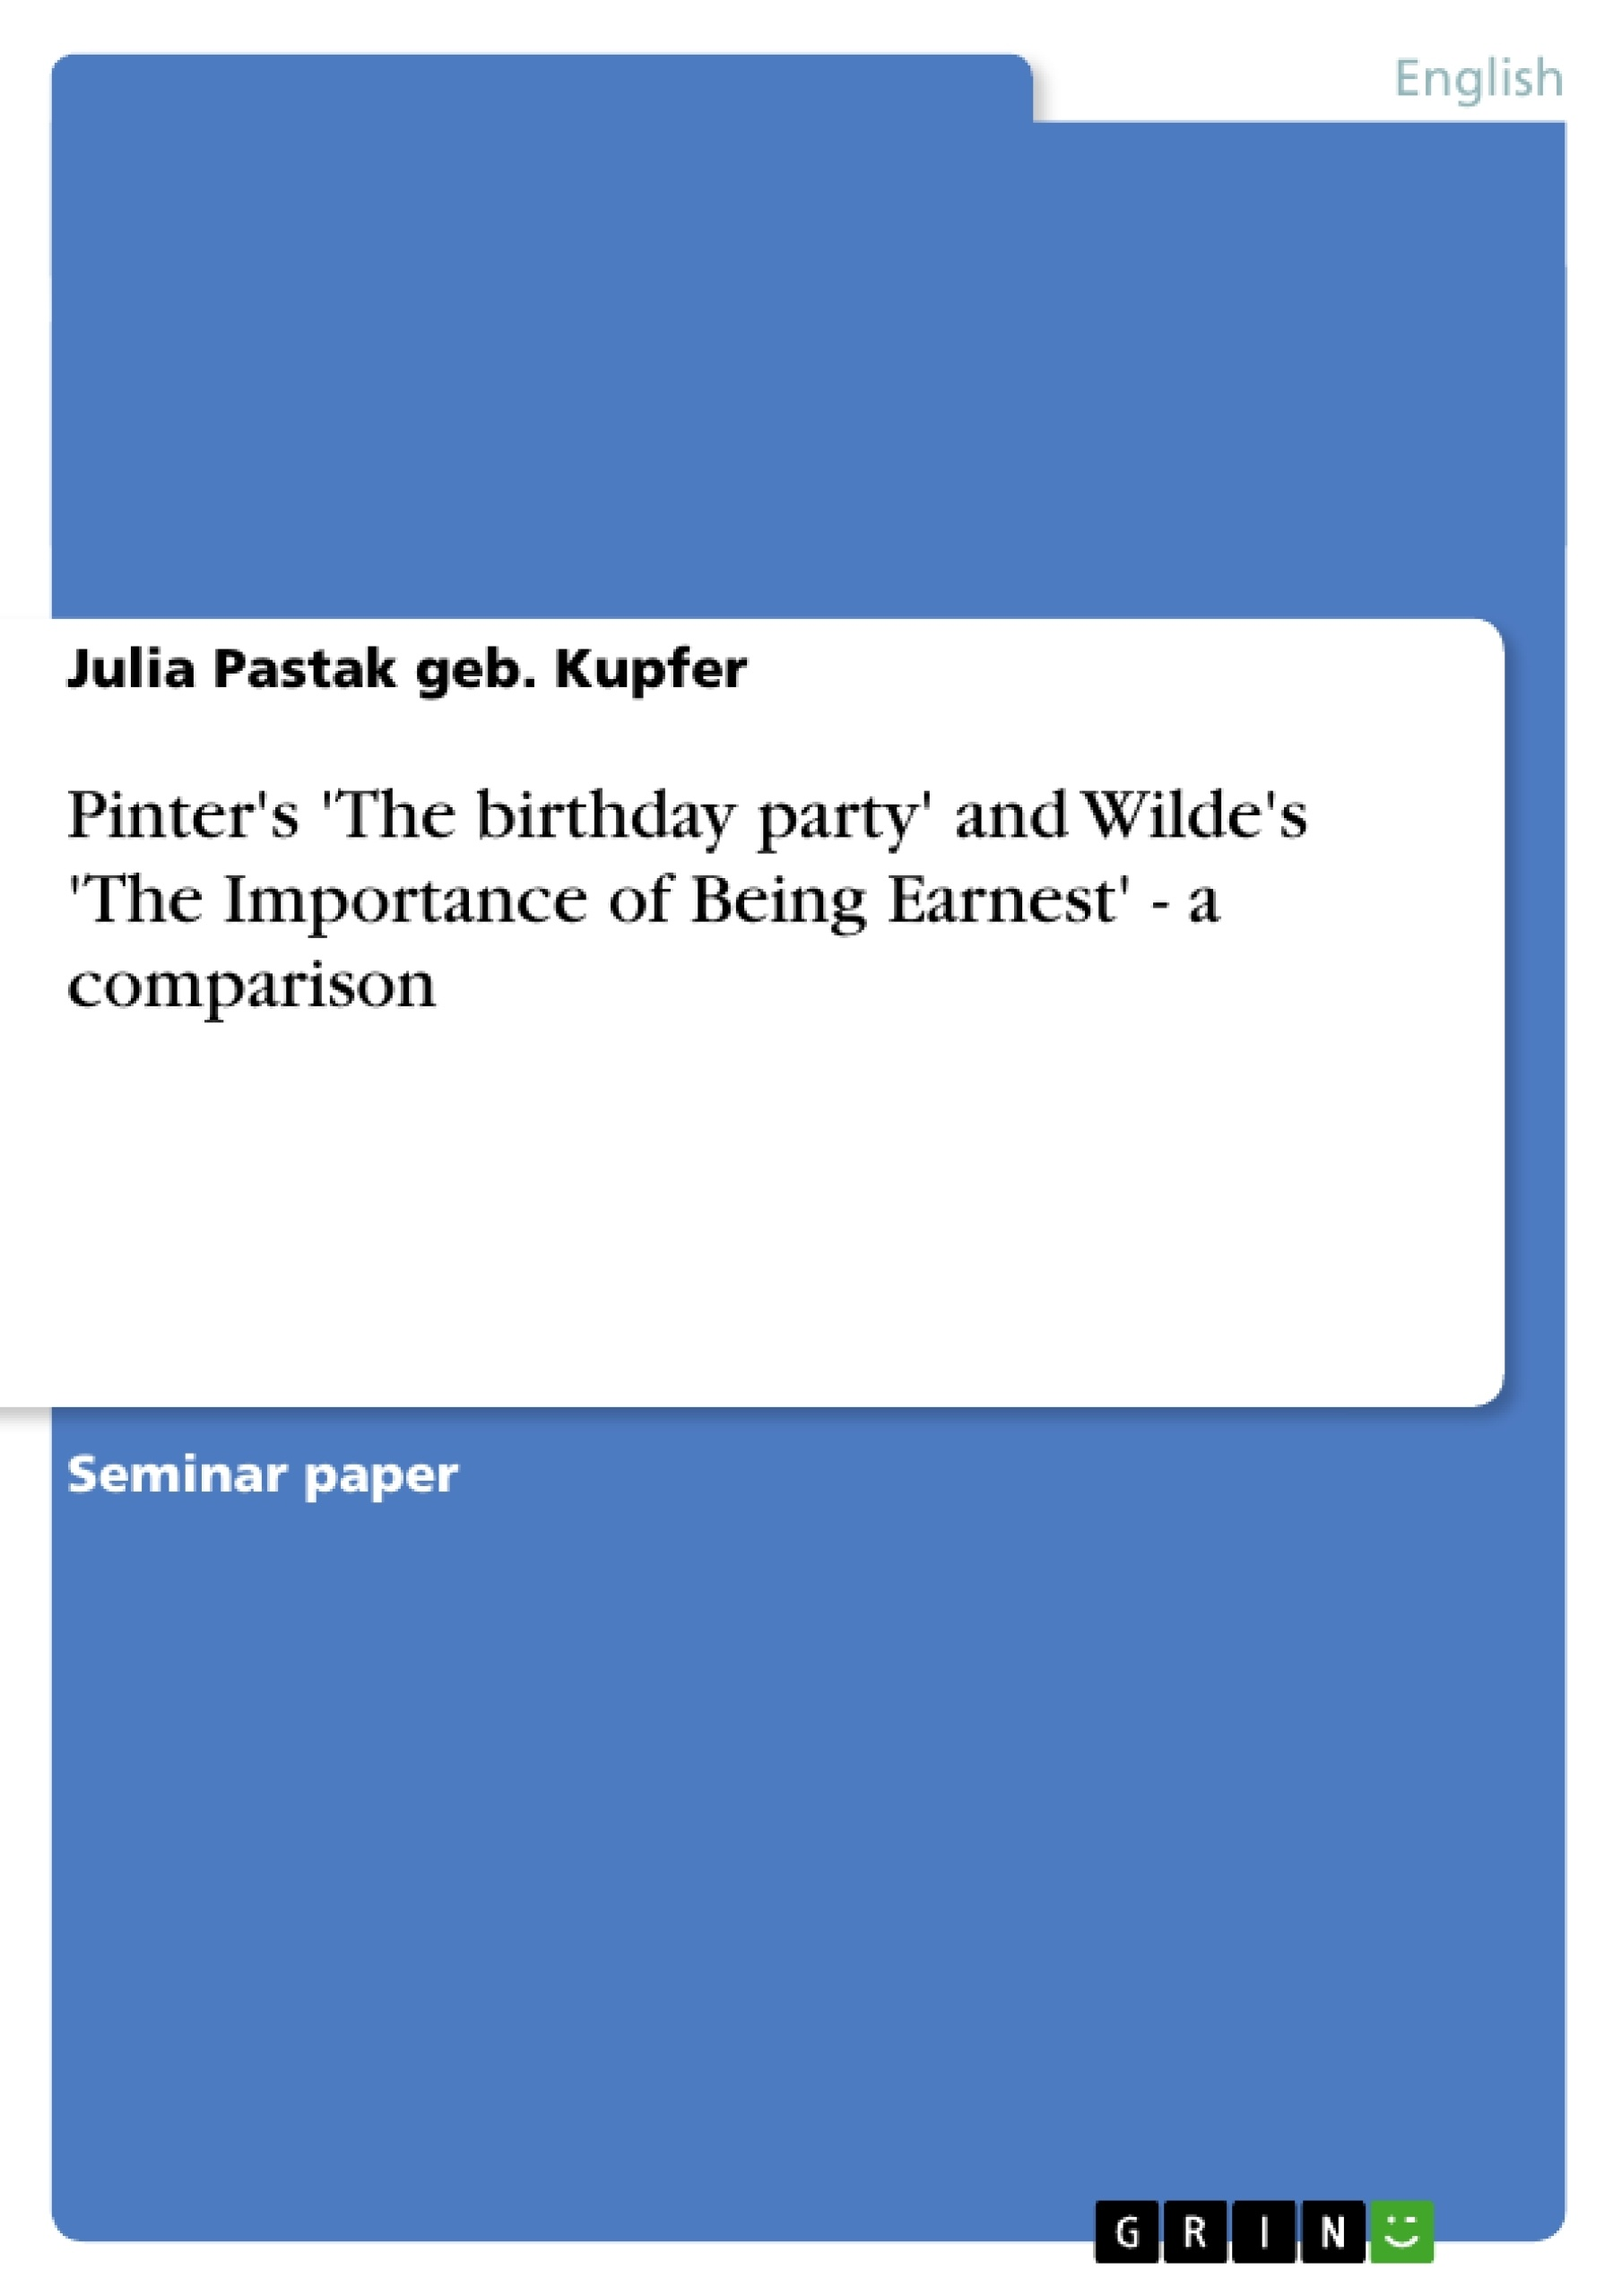 Title: Pinter's 'The birthday party' and Wilde's 'The Importance of Being Earnest' -  a comparison